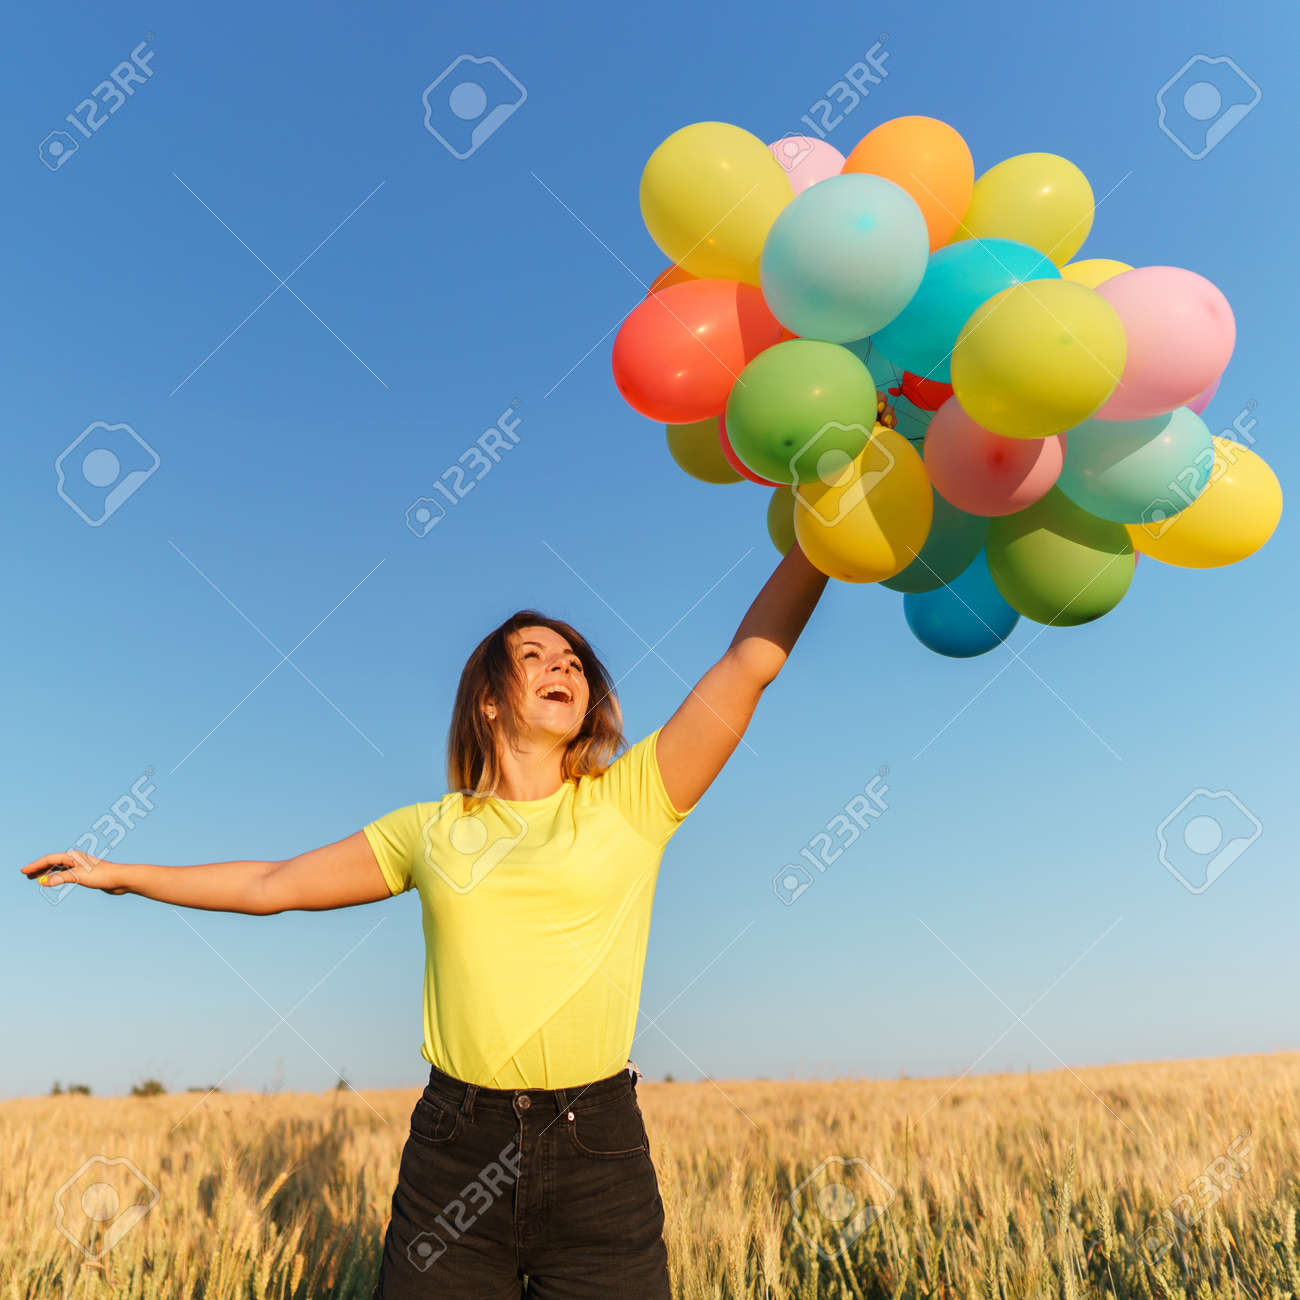 Young girl with colorful balloons in sunset meadow - 126427549